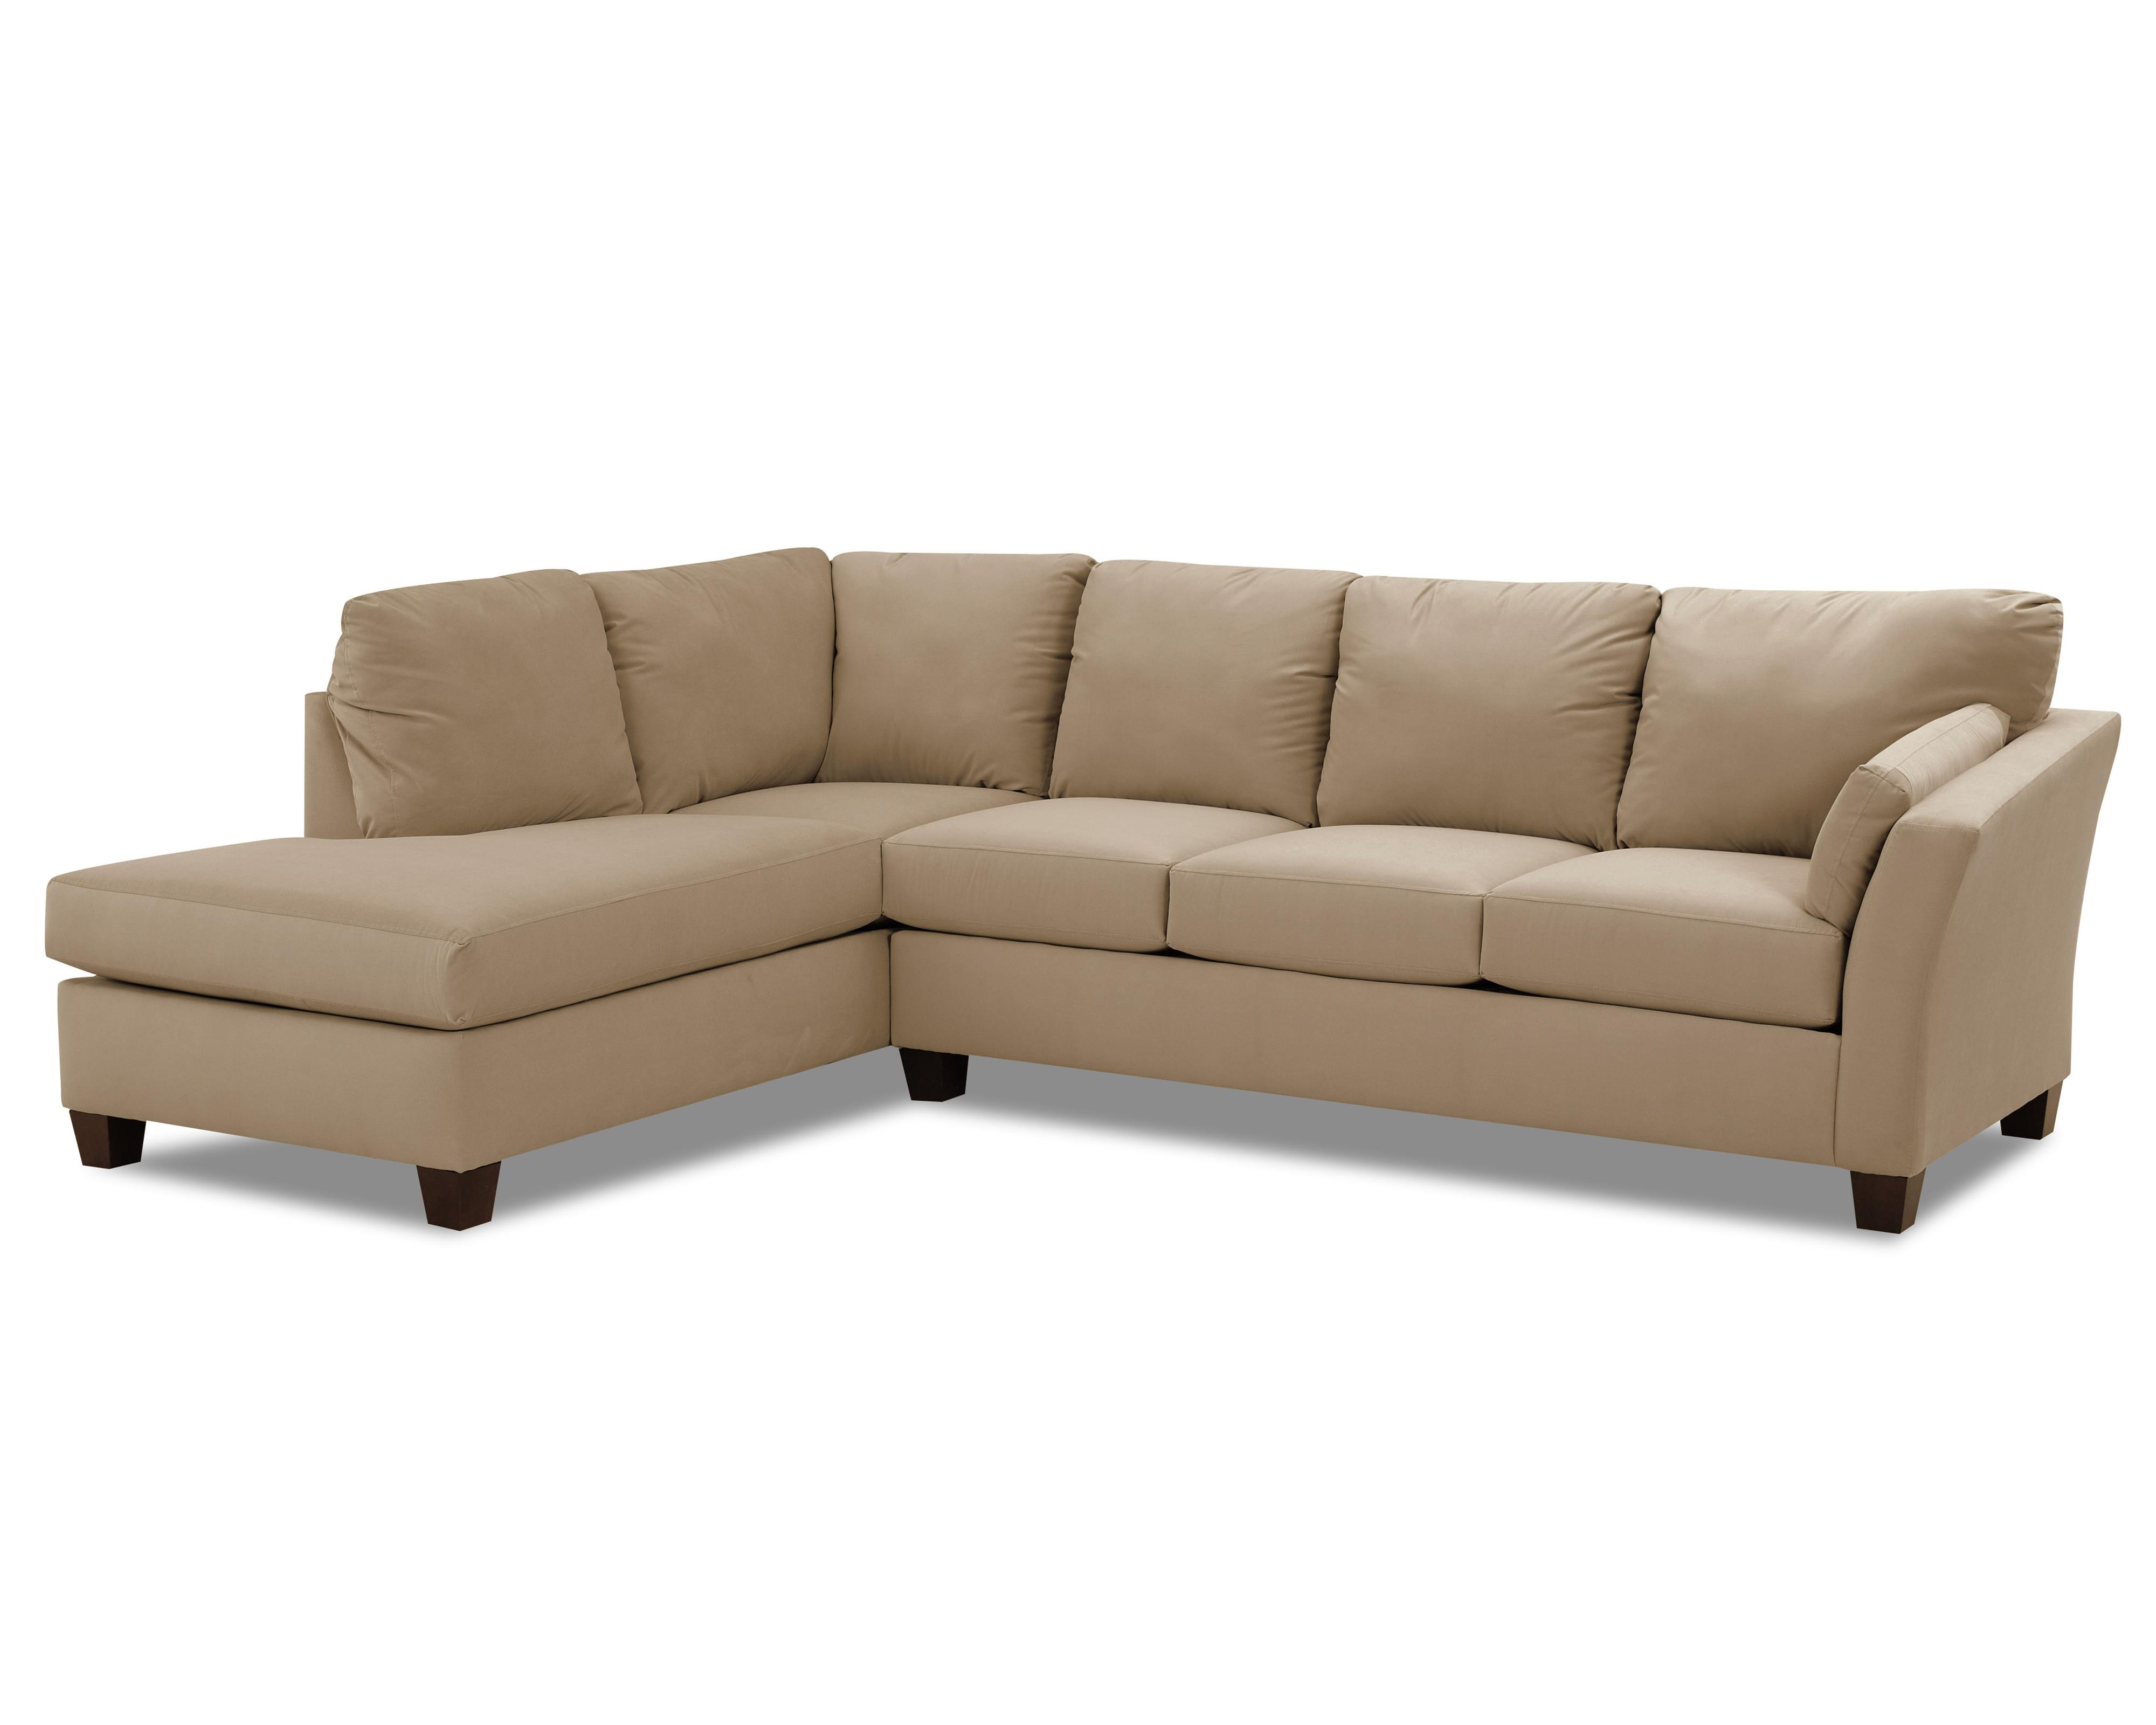 Klaussner Drew Two Piece Sectional Sofa - Item Number: E16LCHASE+E16RS-LibreTaupe